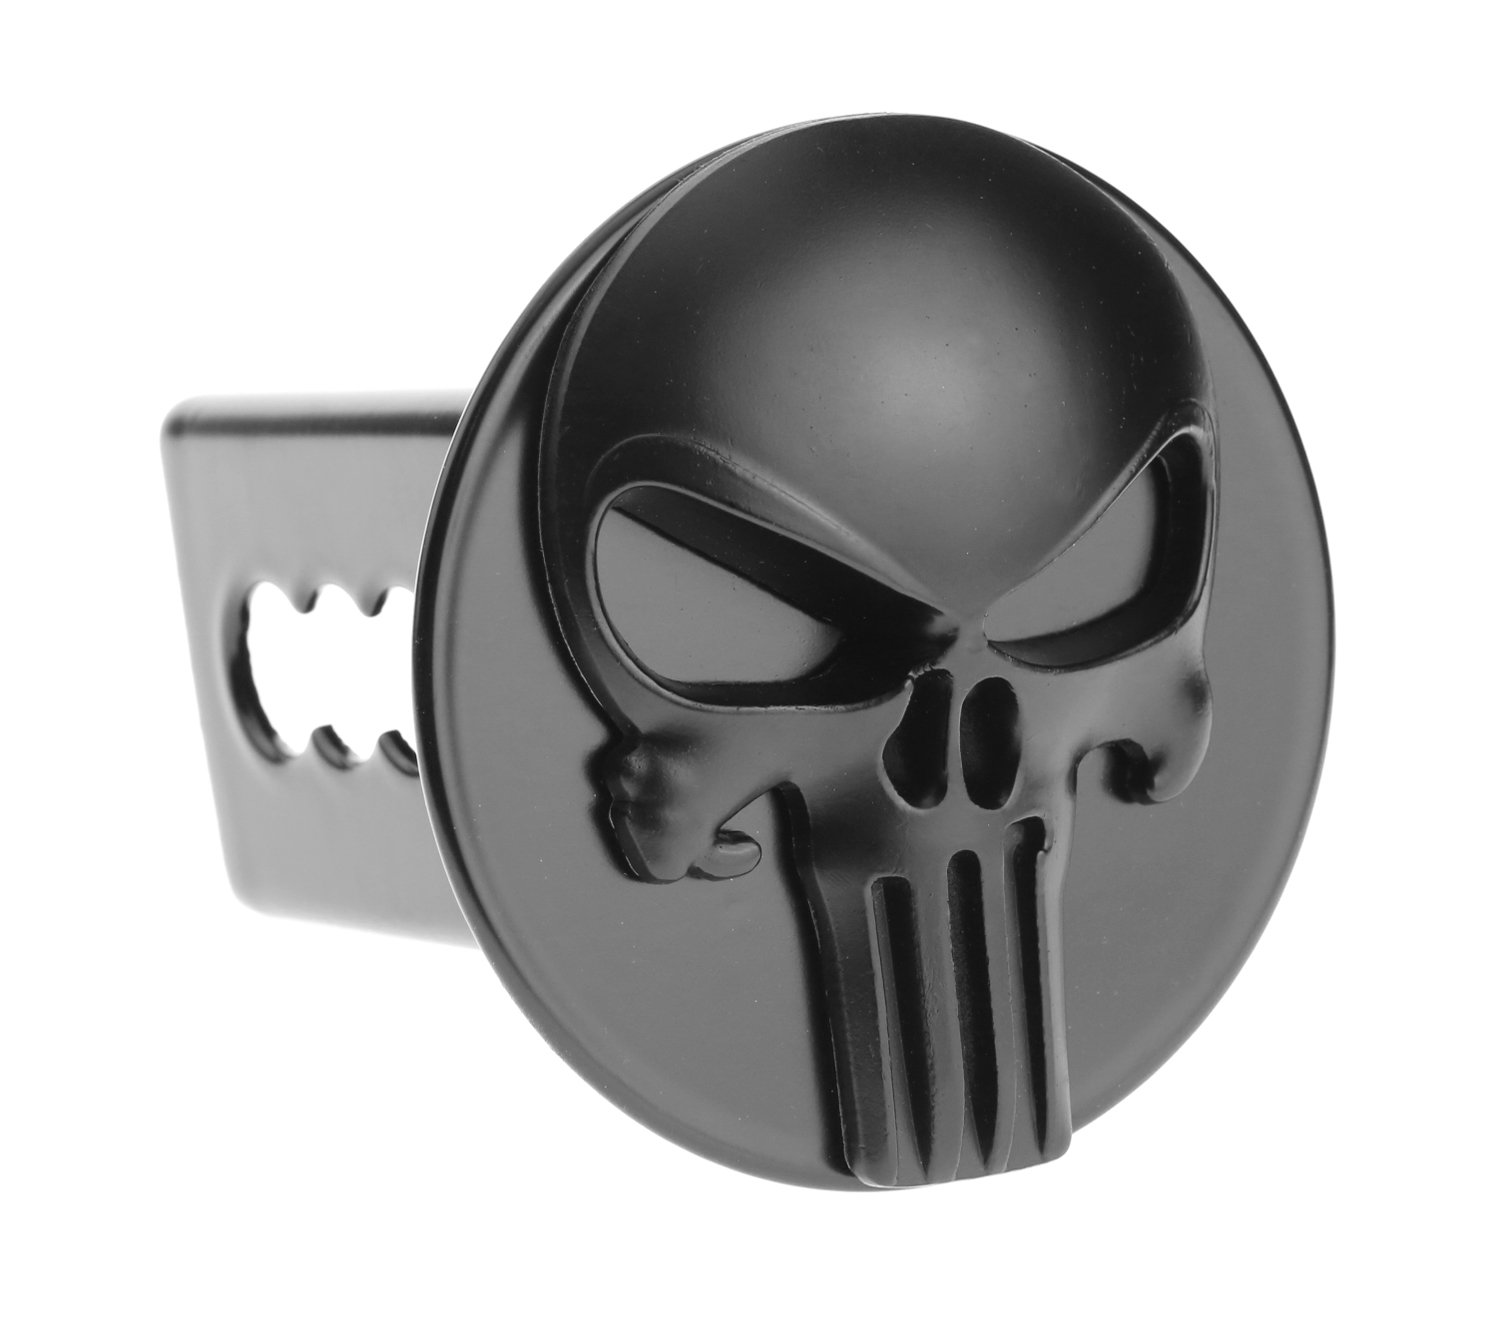 Punisher 3D Black Emblem Metal Trailer Hitch Cover Fit 2' Receivers bparts